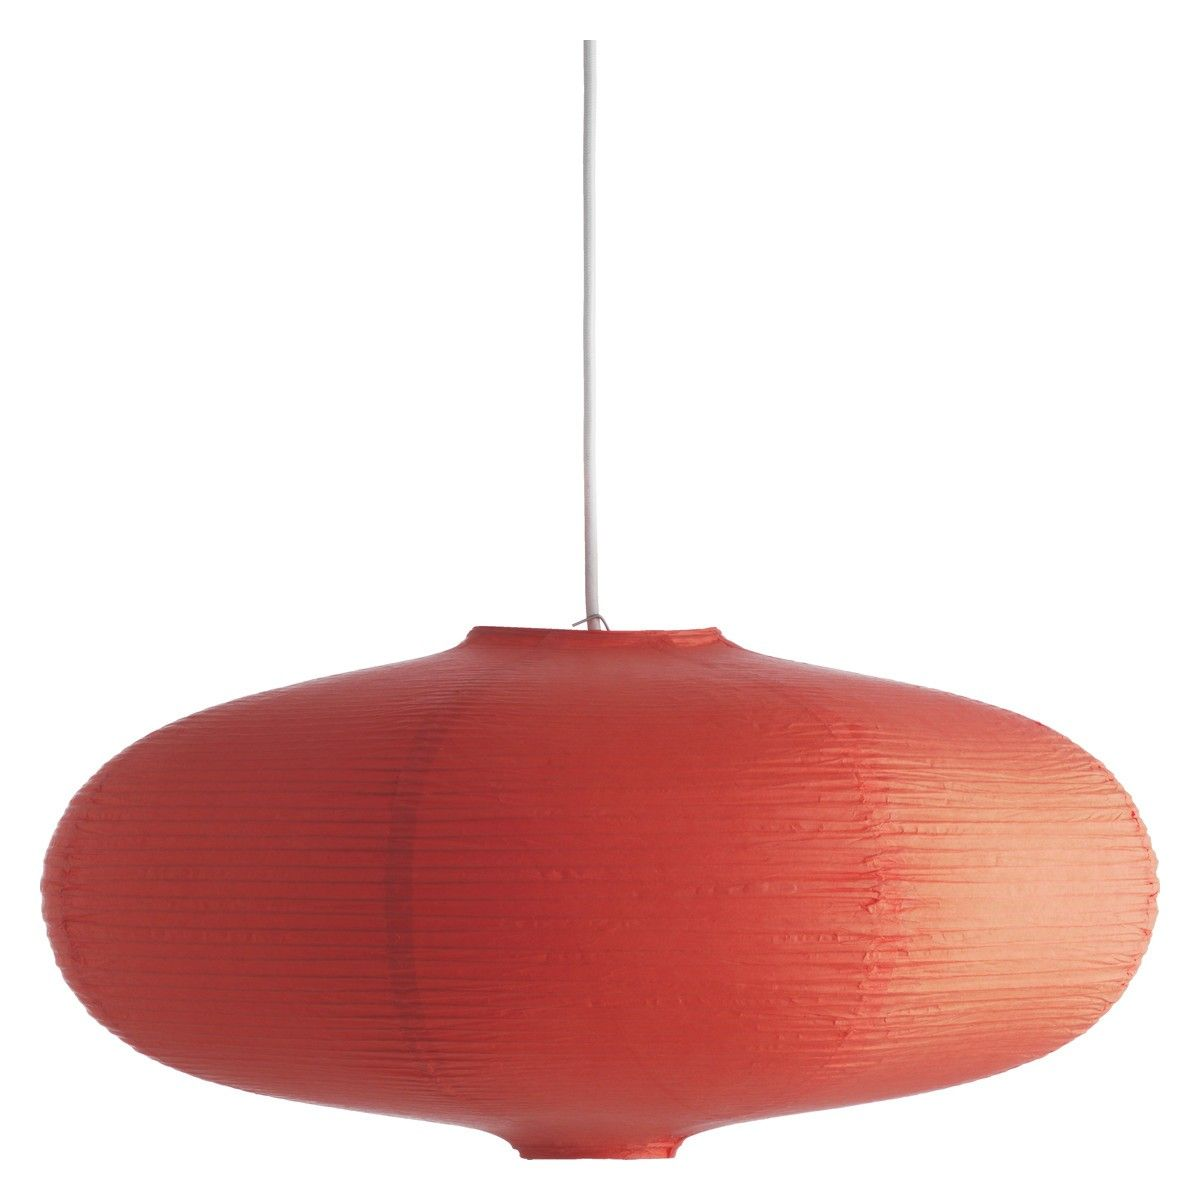 Habitat, SHIRO Orange paper ceiling light shade. Looks ...